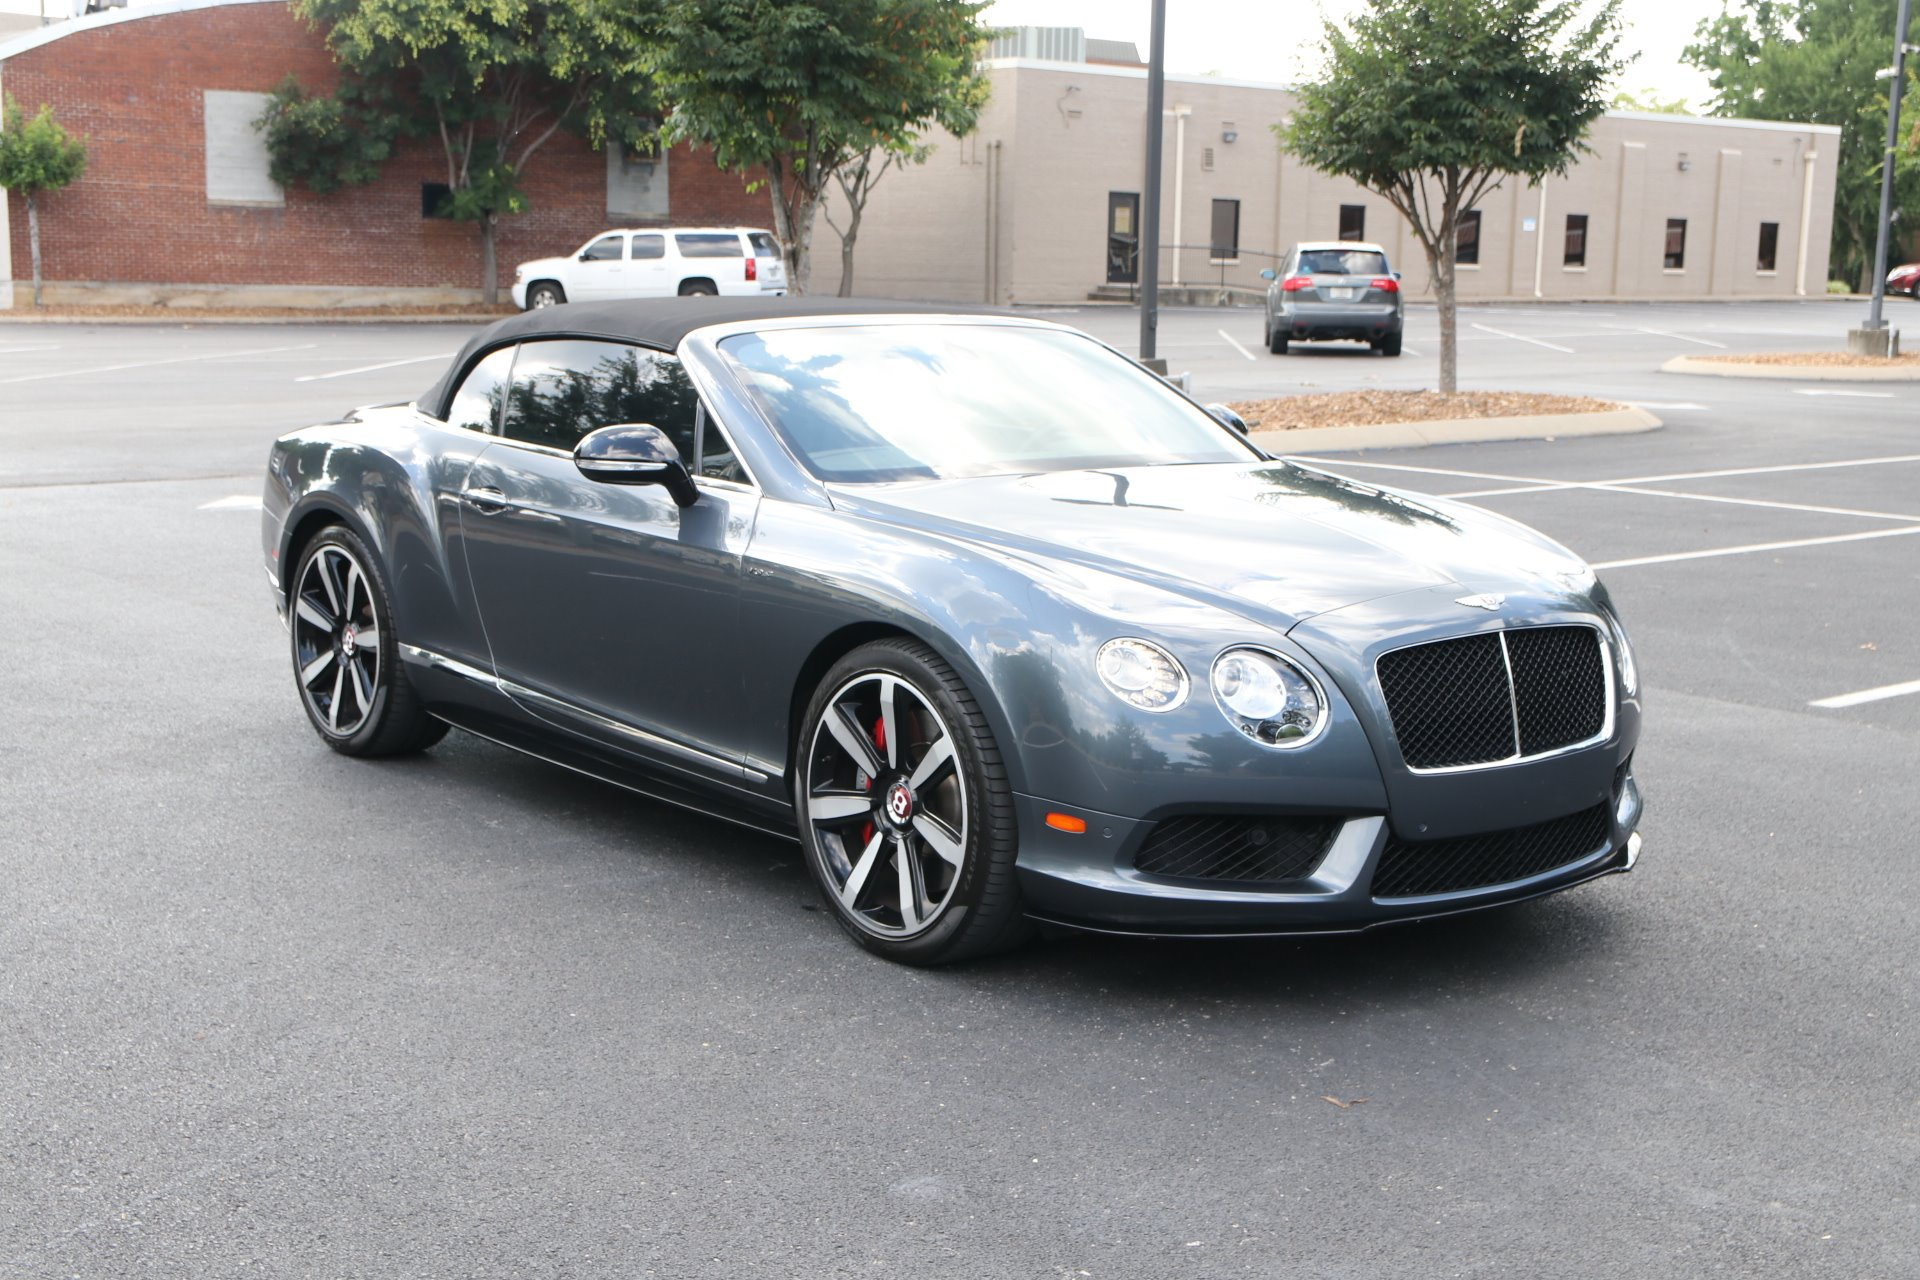 Used 2014 Bentley Continental GTC S V8 Convertible W/NAV GT V8 S for sale Sold at Auto Collection in Murfreesboro TN 37130 1